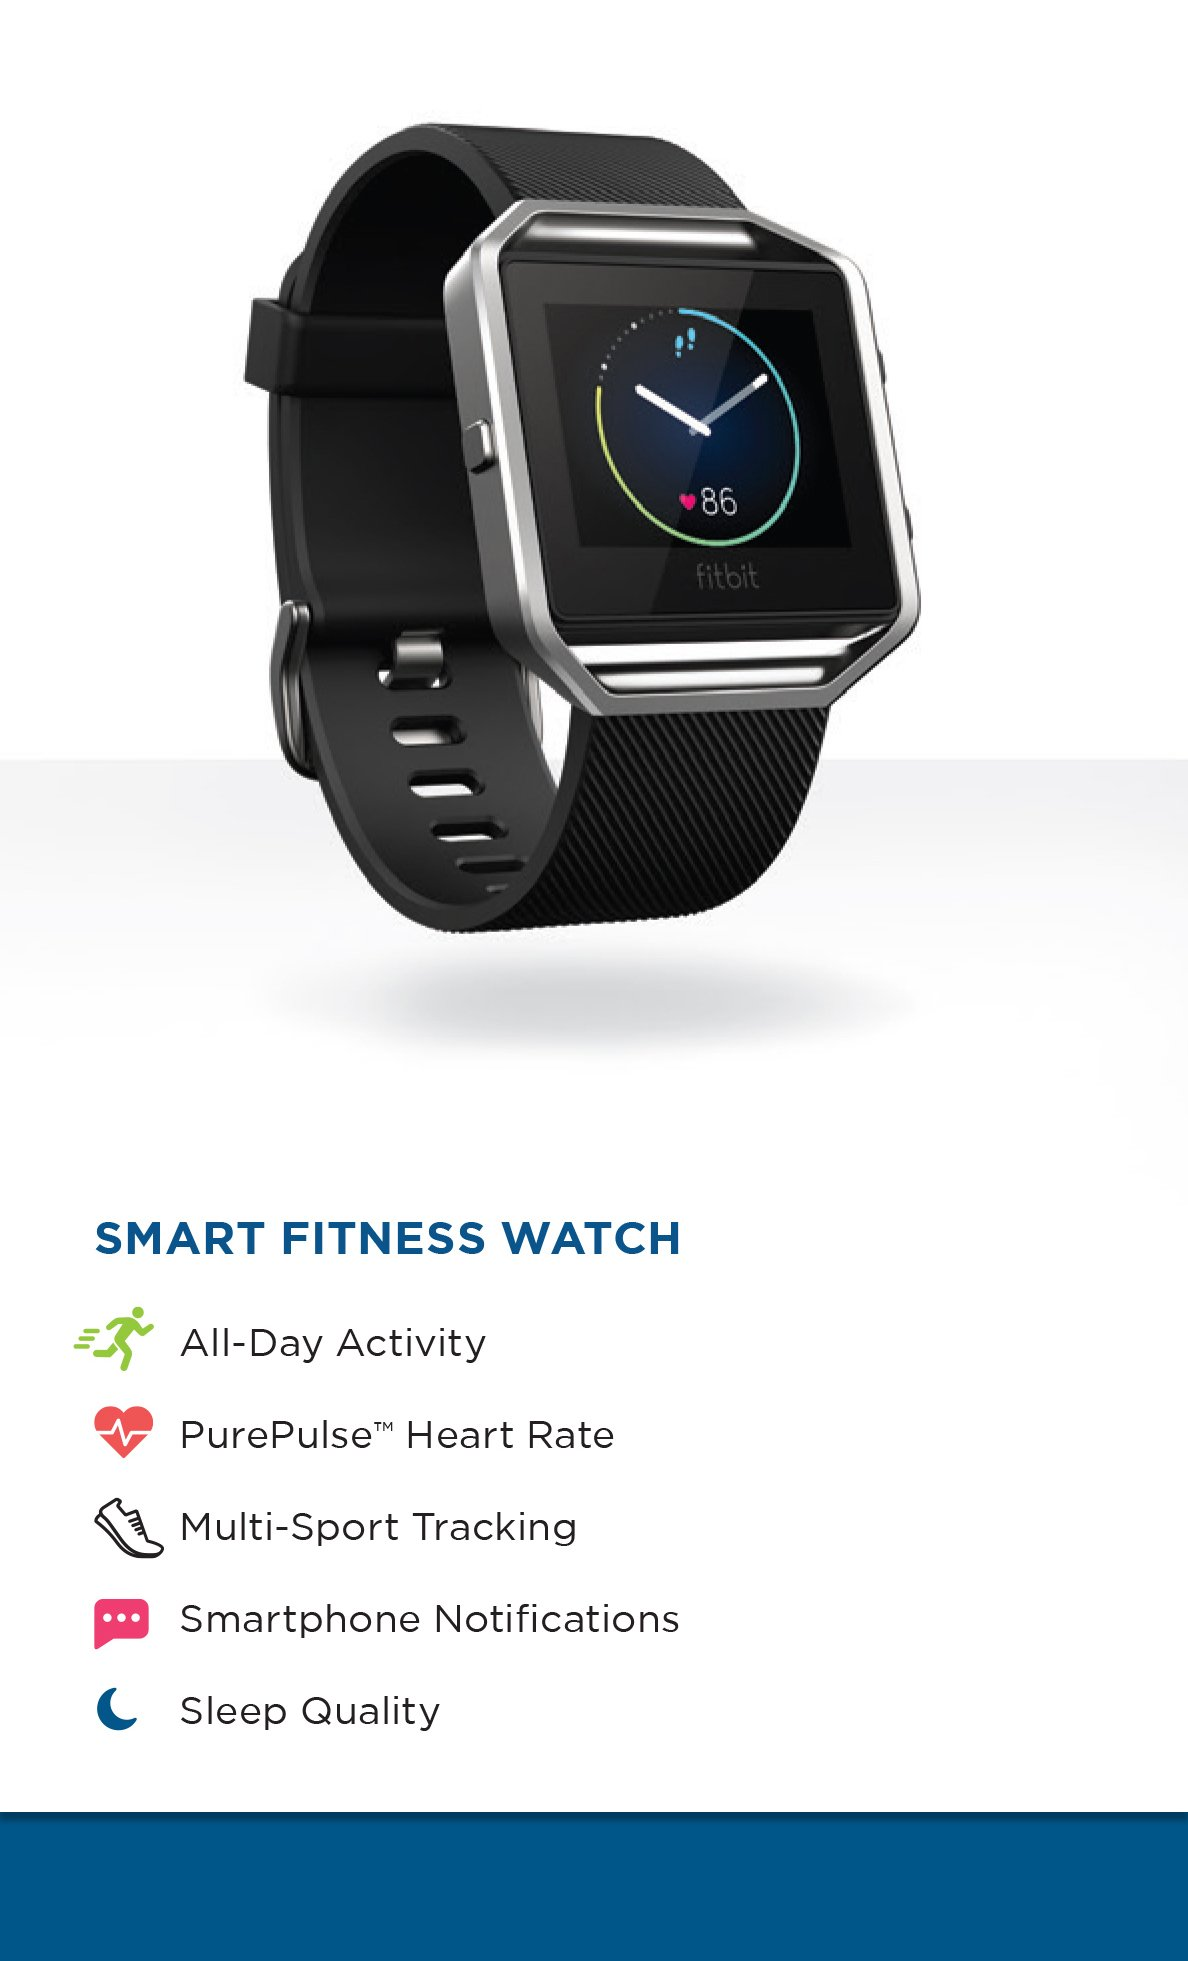 Fitbit Blaze Smart Fitness Watch, Black, Silver, Large (US Version) by Fitbit (Image #7)